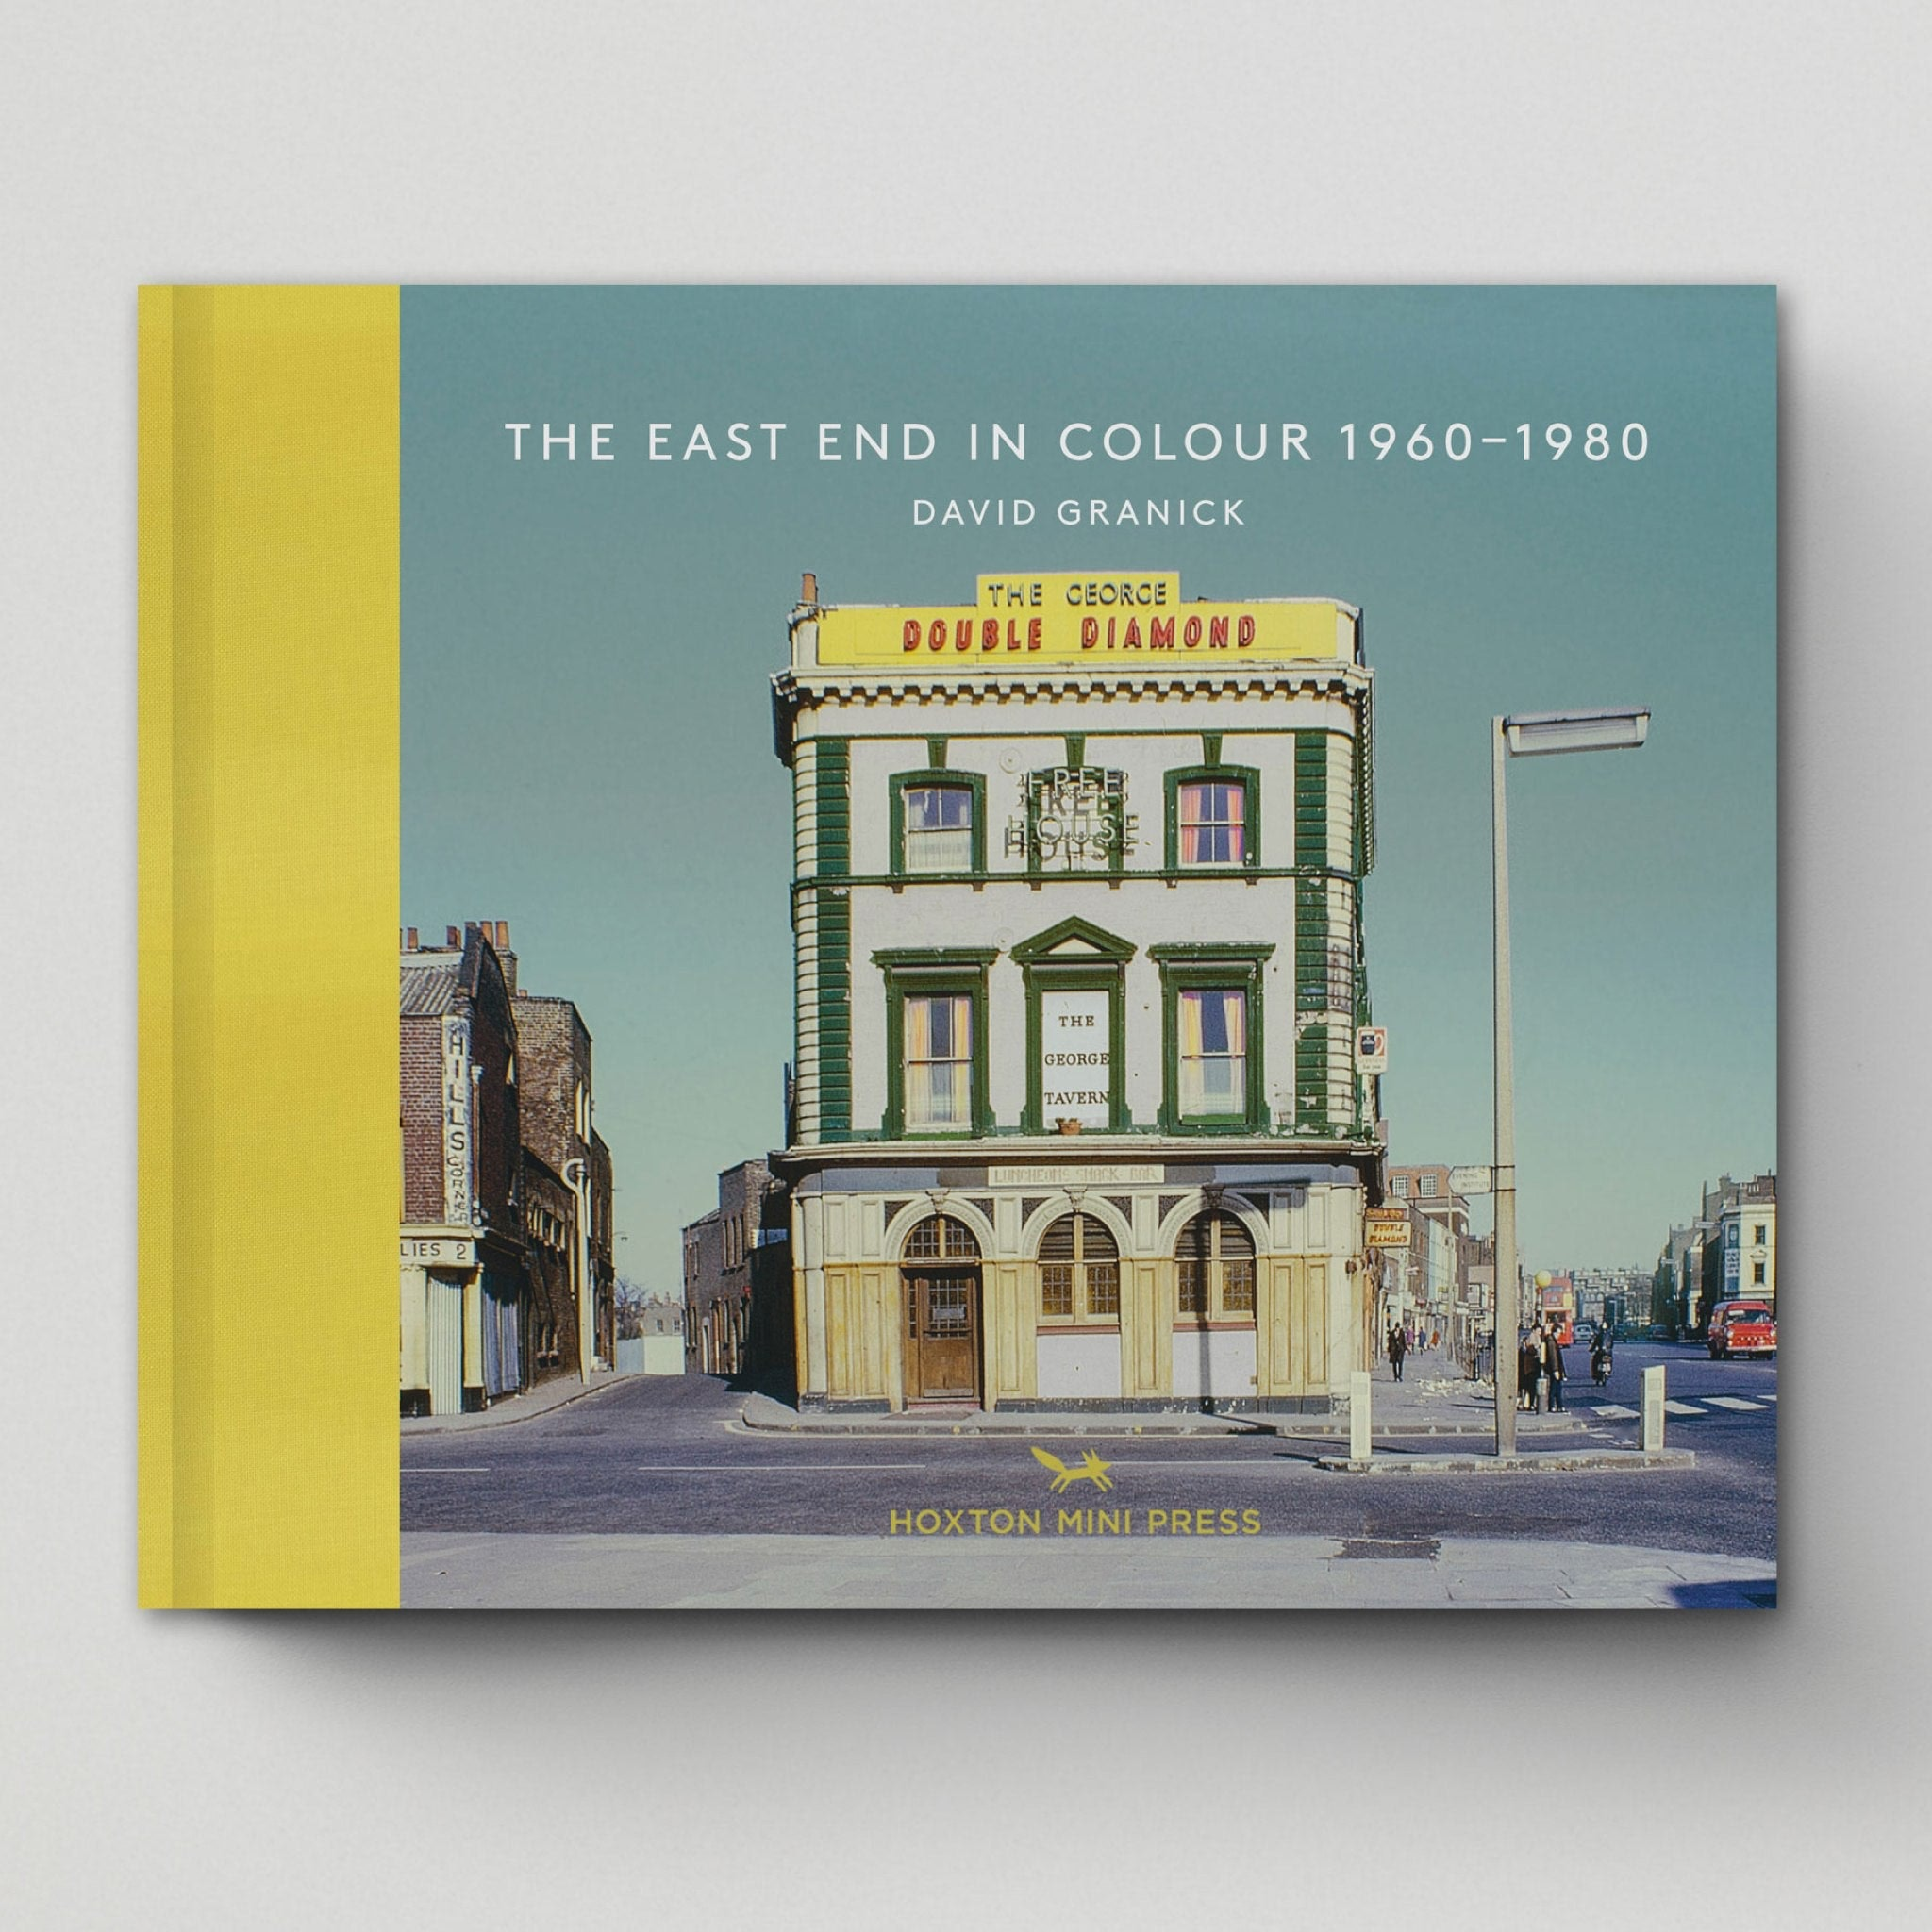 The East End in Colour 1960-1980 by Hoxton Mini Press